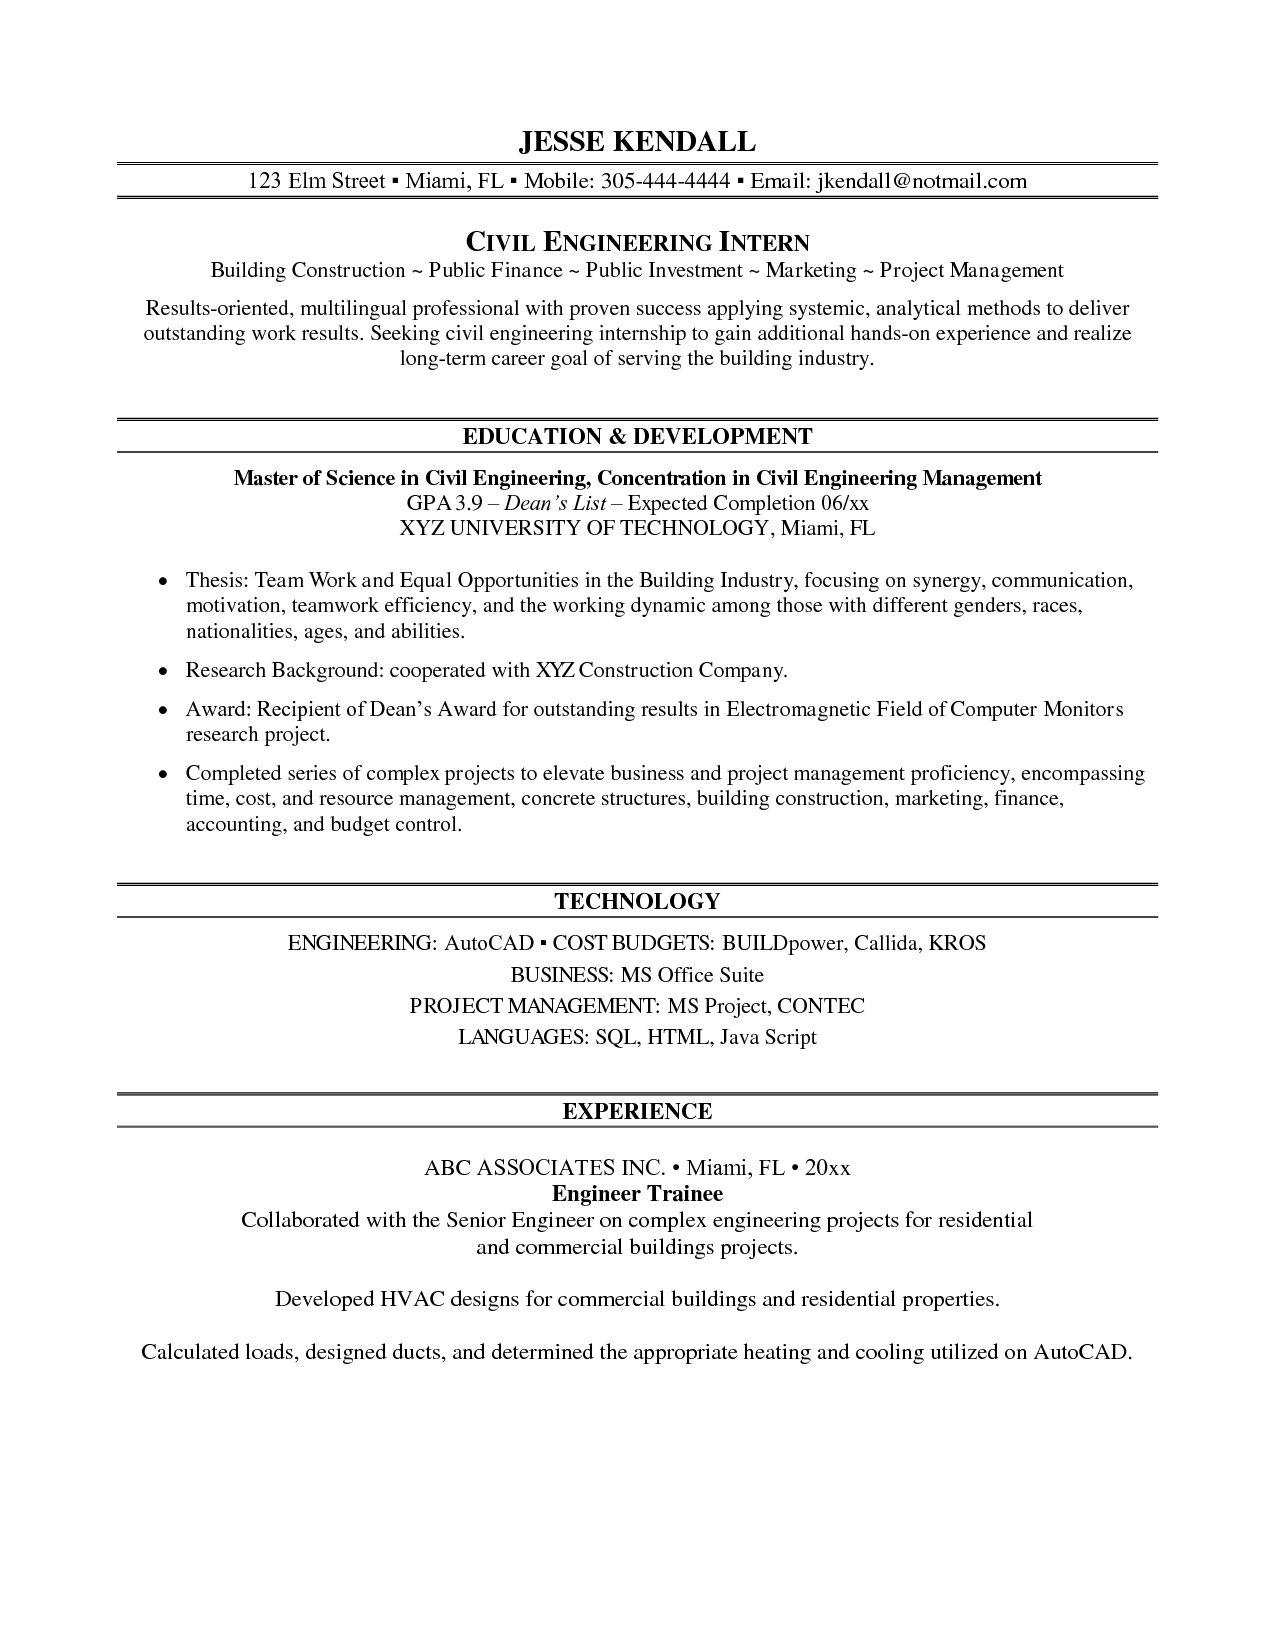 keywords civil engineer intern cover letter examples engineering internship resume free builder best free home design idea inspiration - Engineering Internship Resume